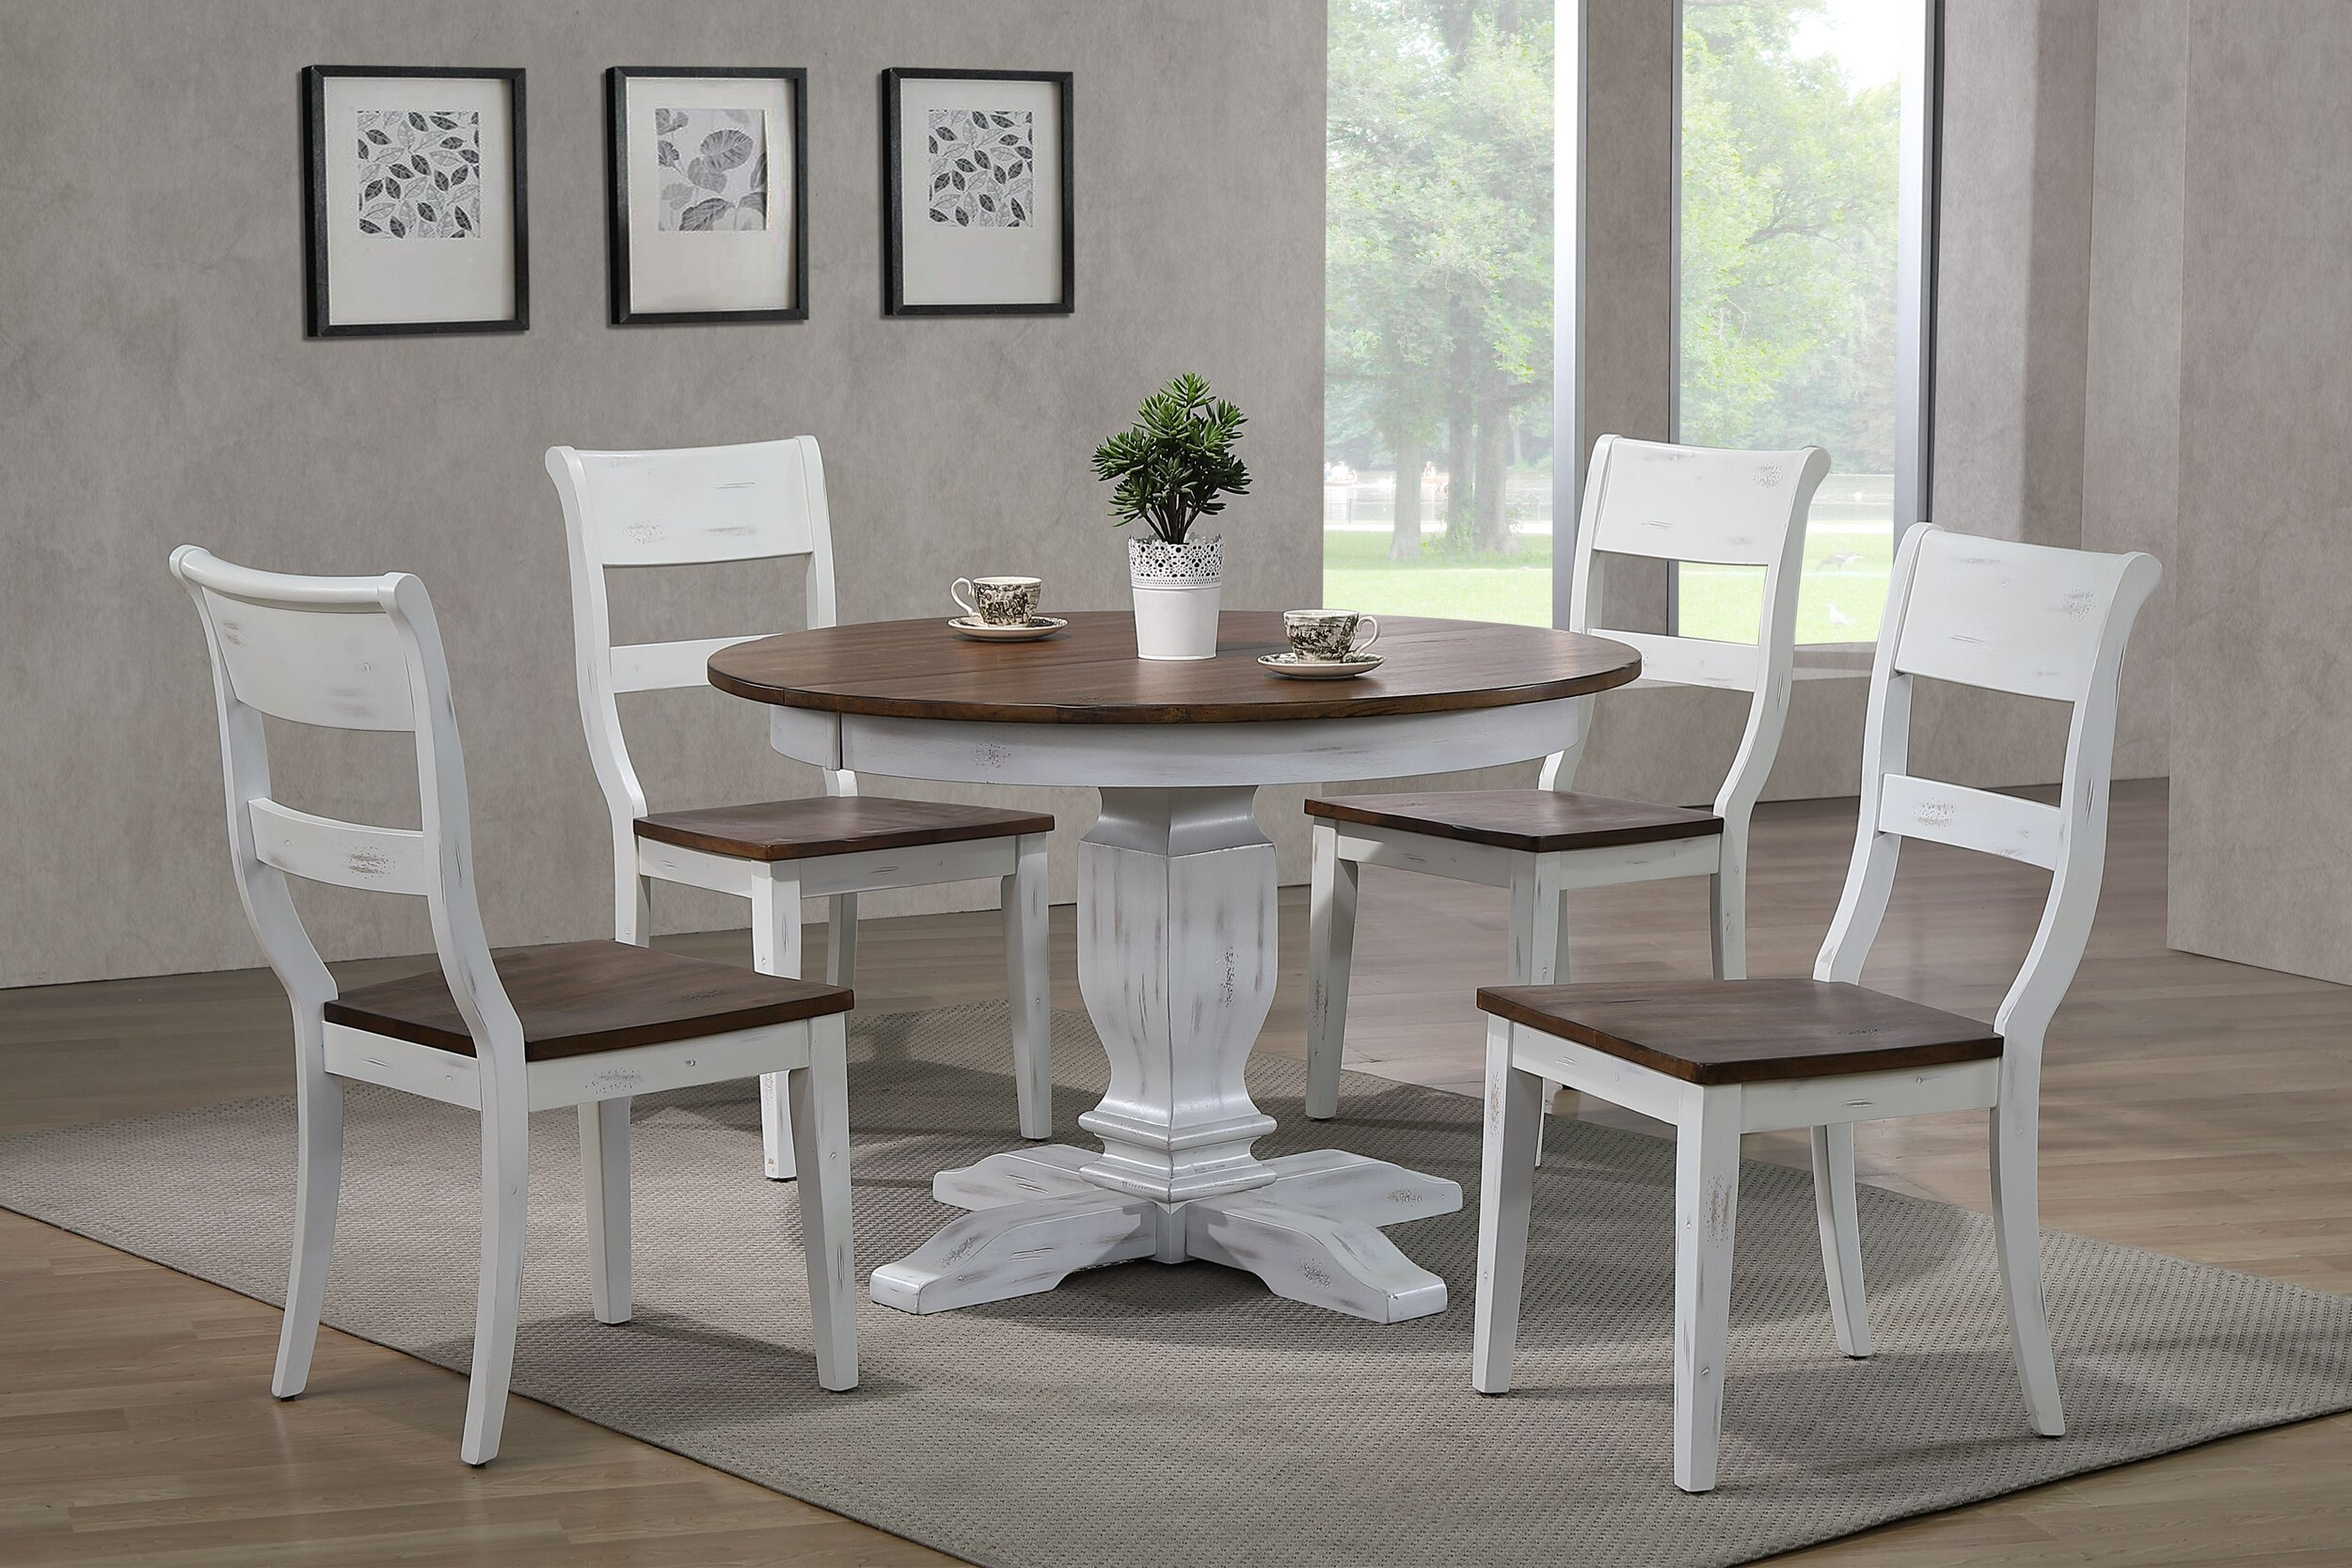 "45""x45""x63"" Transitional Distressed Cocoa Brown & Cotton White (5-Piece Dining Set)"